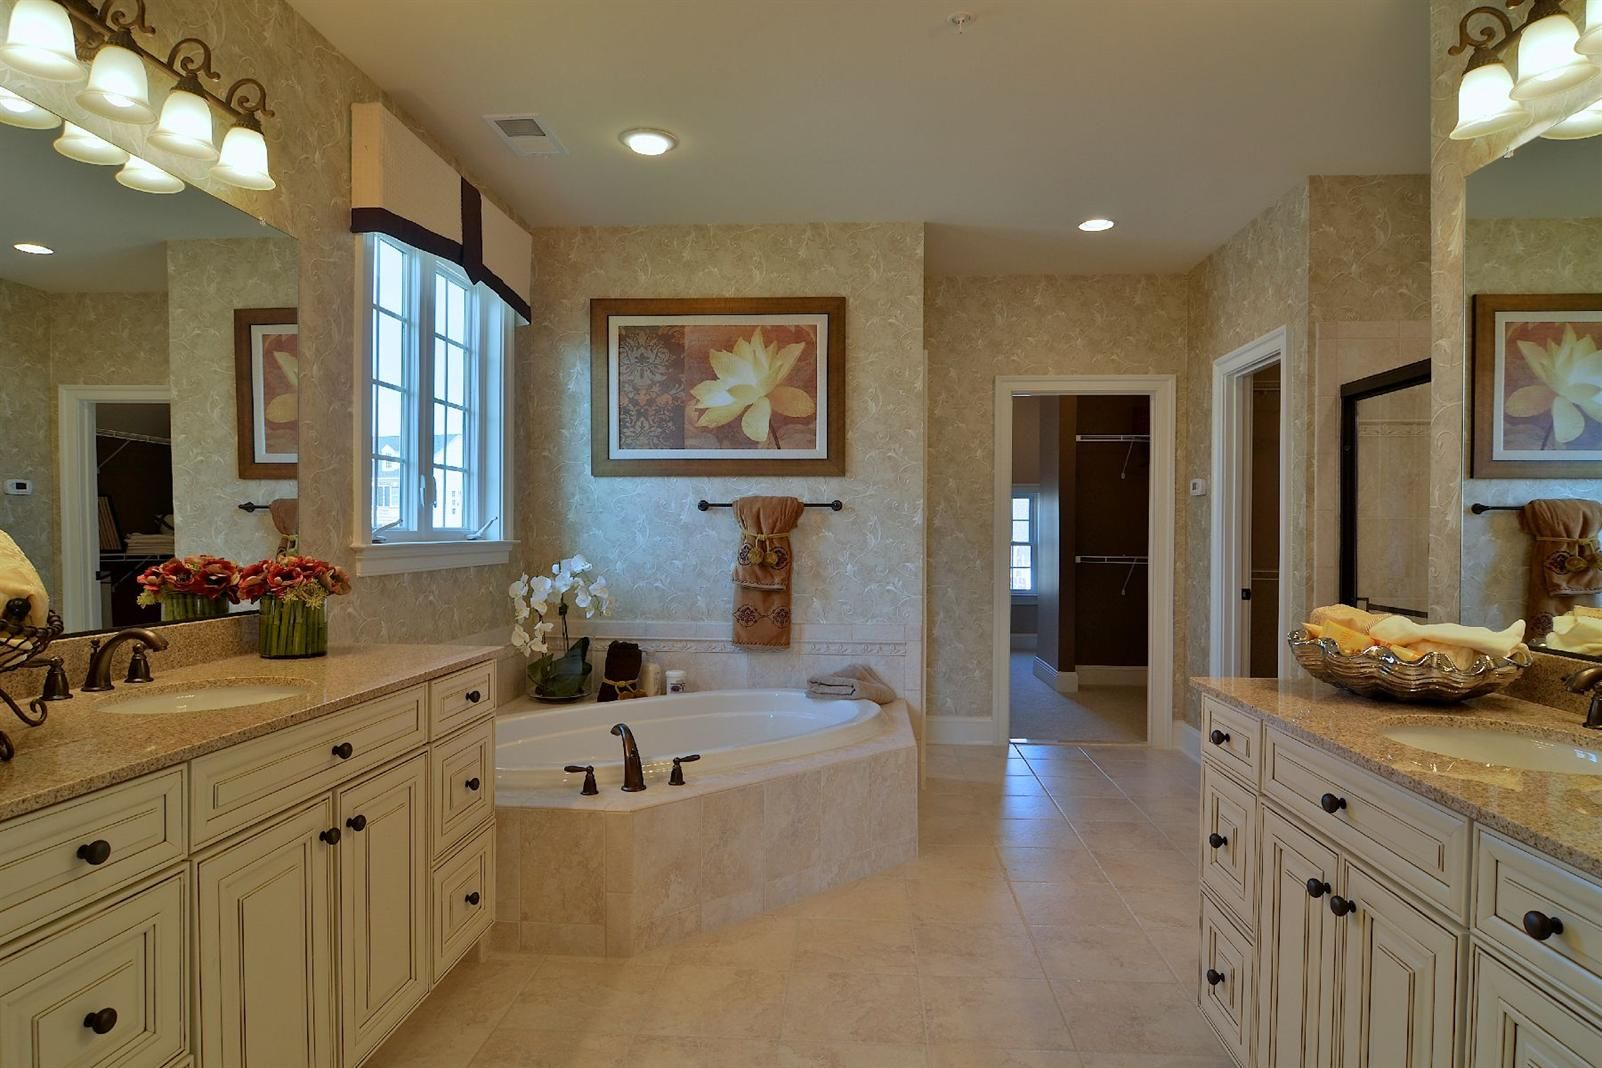 Bathroom Remodeling Upper Marlboro Md find new beechtree in upper marlboro, md. nvhomes is the #1